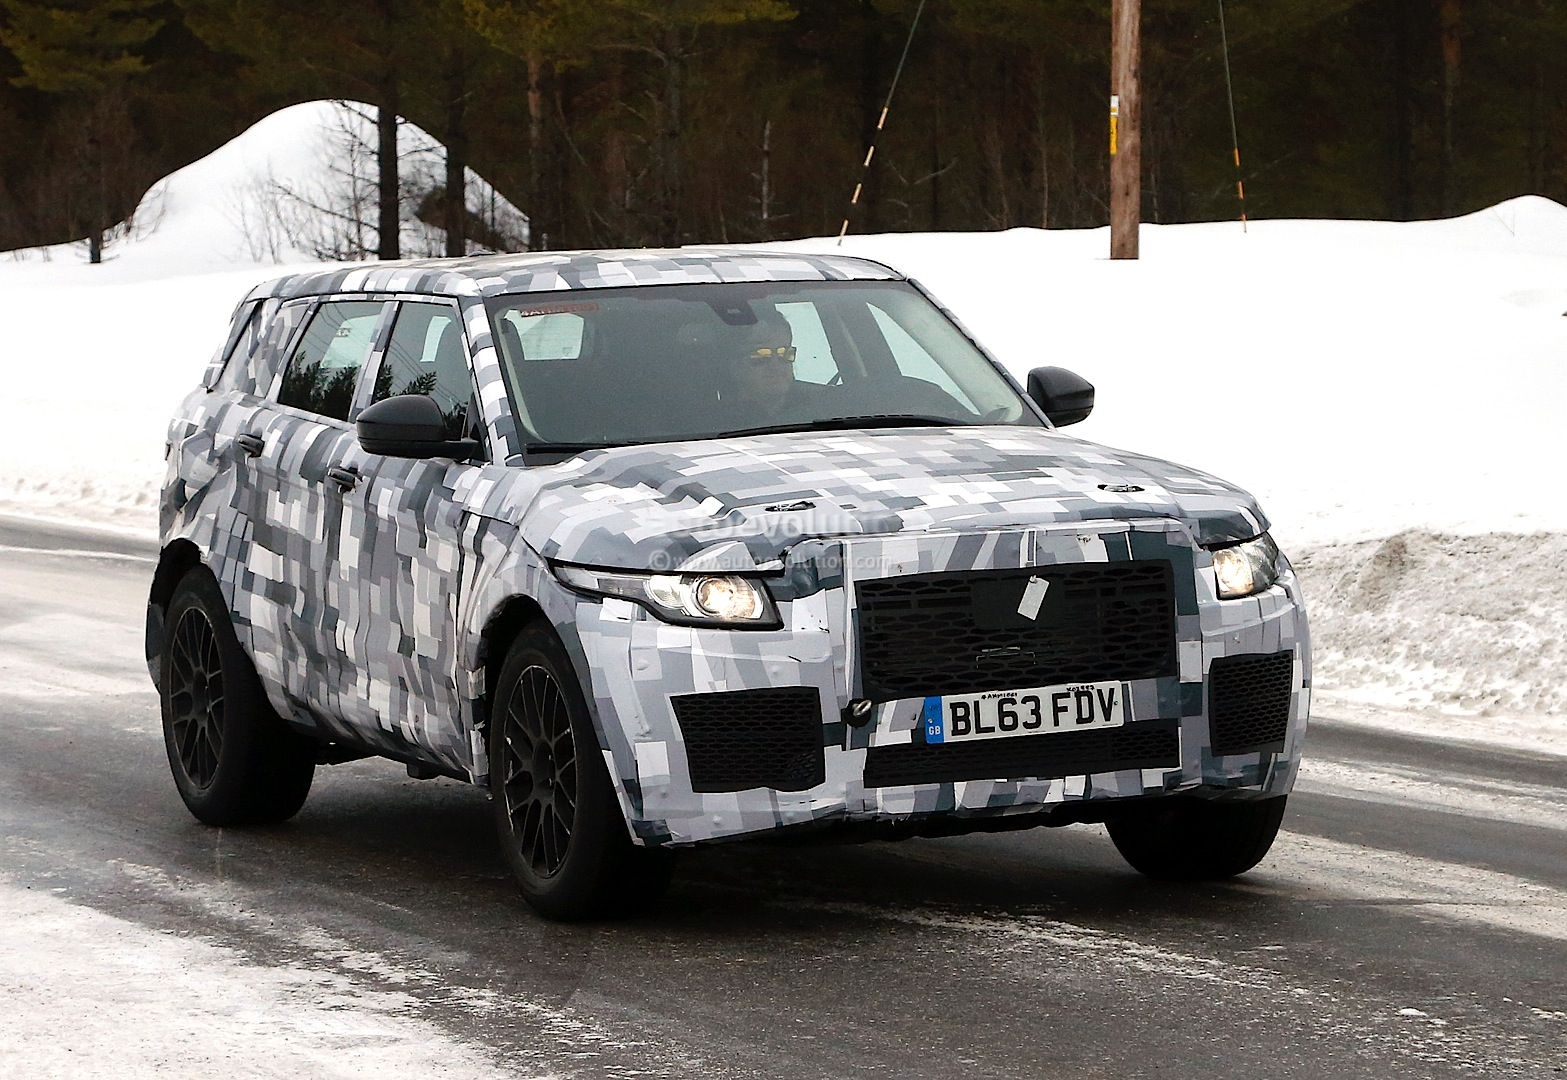 Land Rover Defender Mule >> Spyshots: Land Rover Surprises us With Odd Mule [Photo Gallery] [Updated] - autoevolution